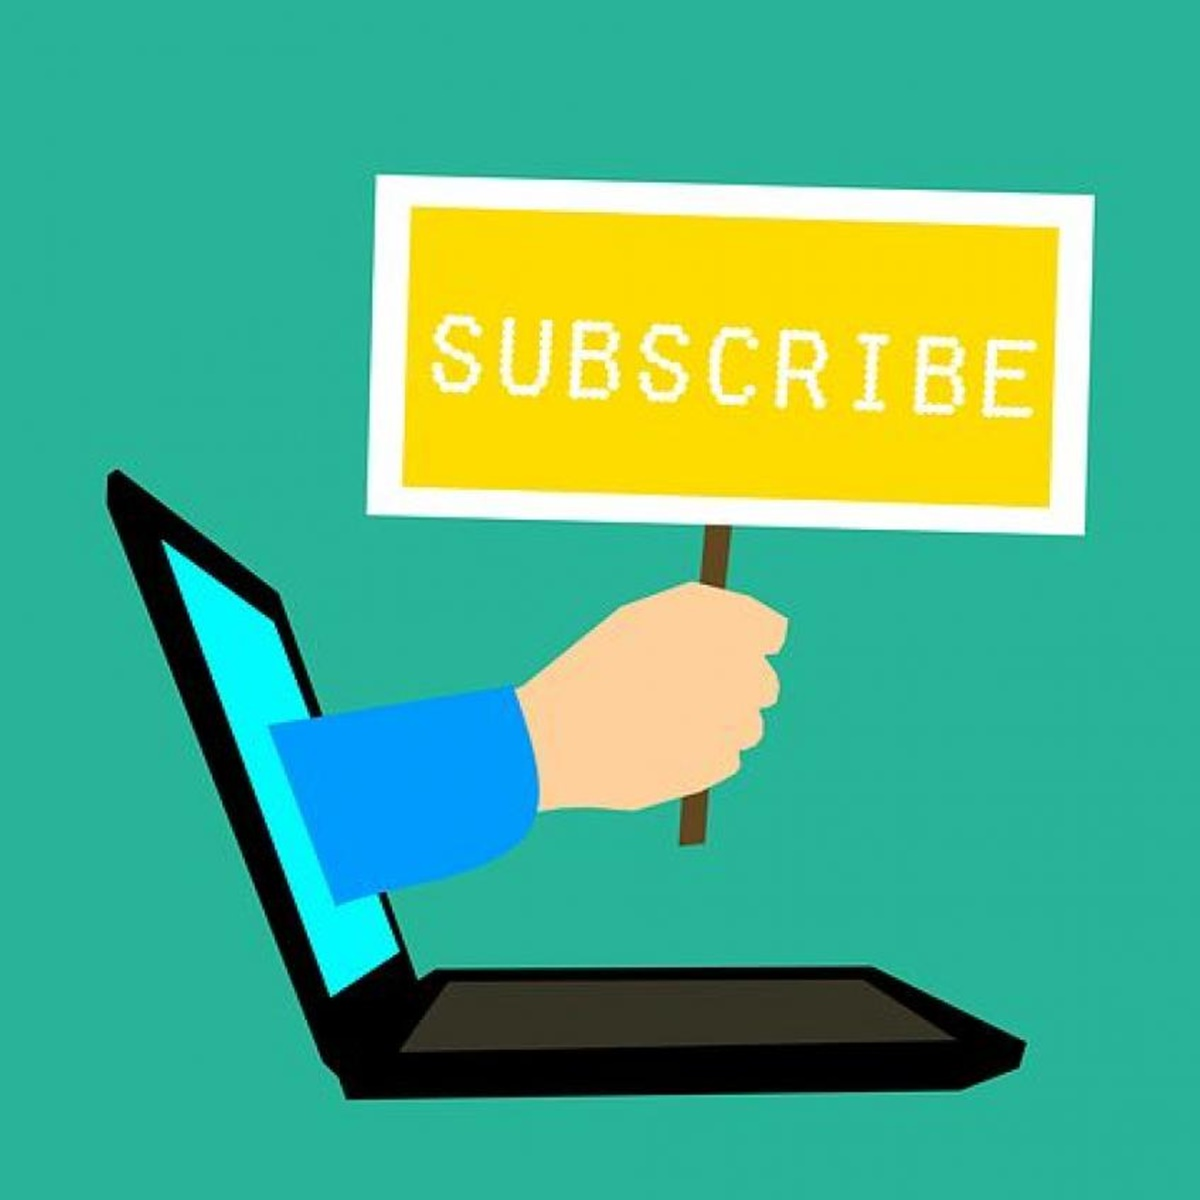 Encourage the prospect to subscribe